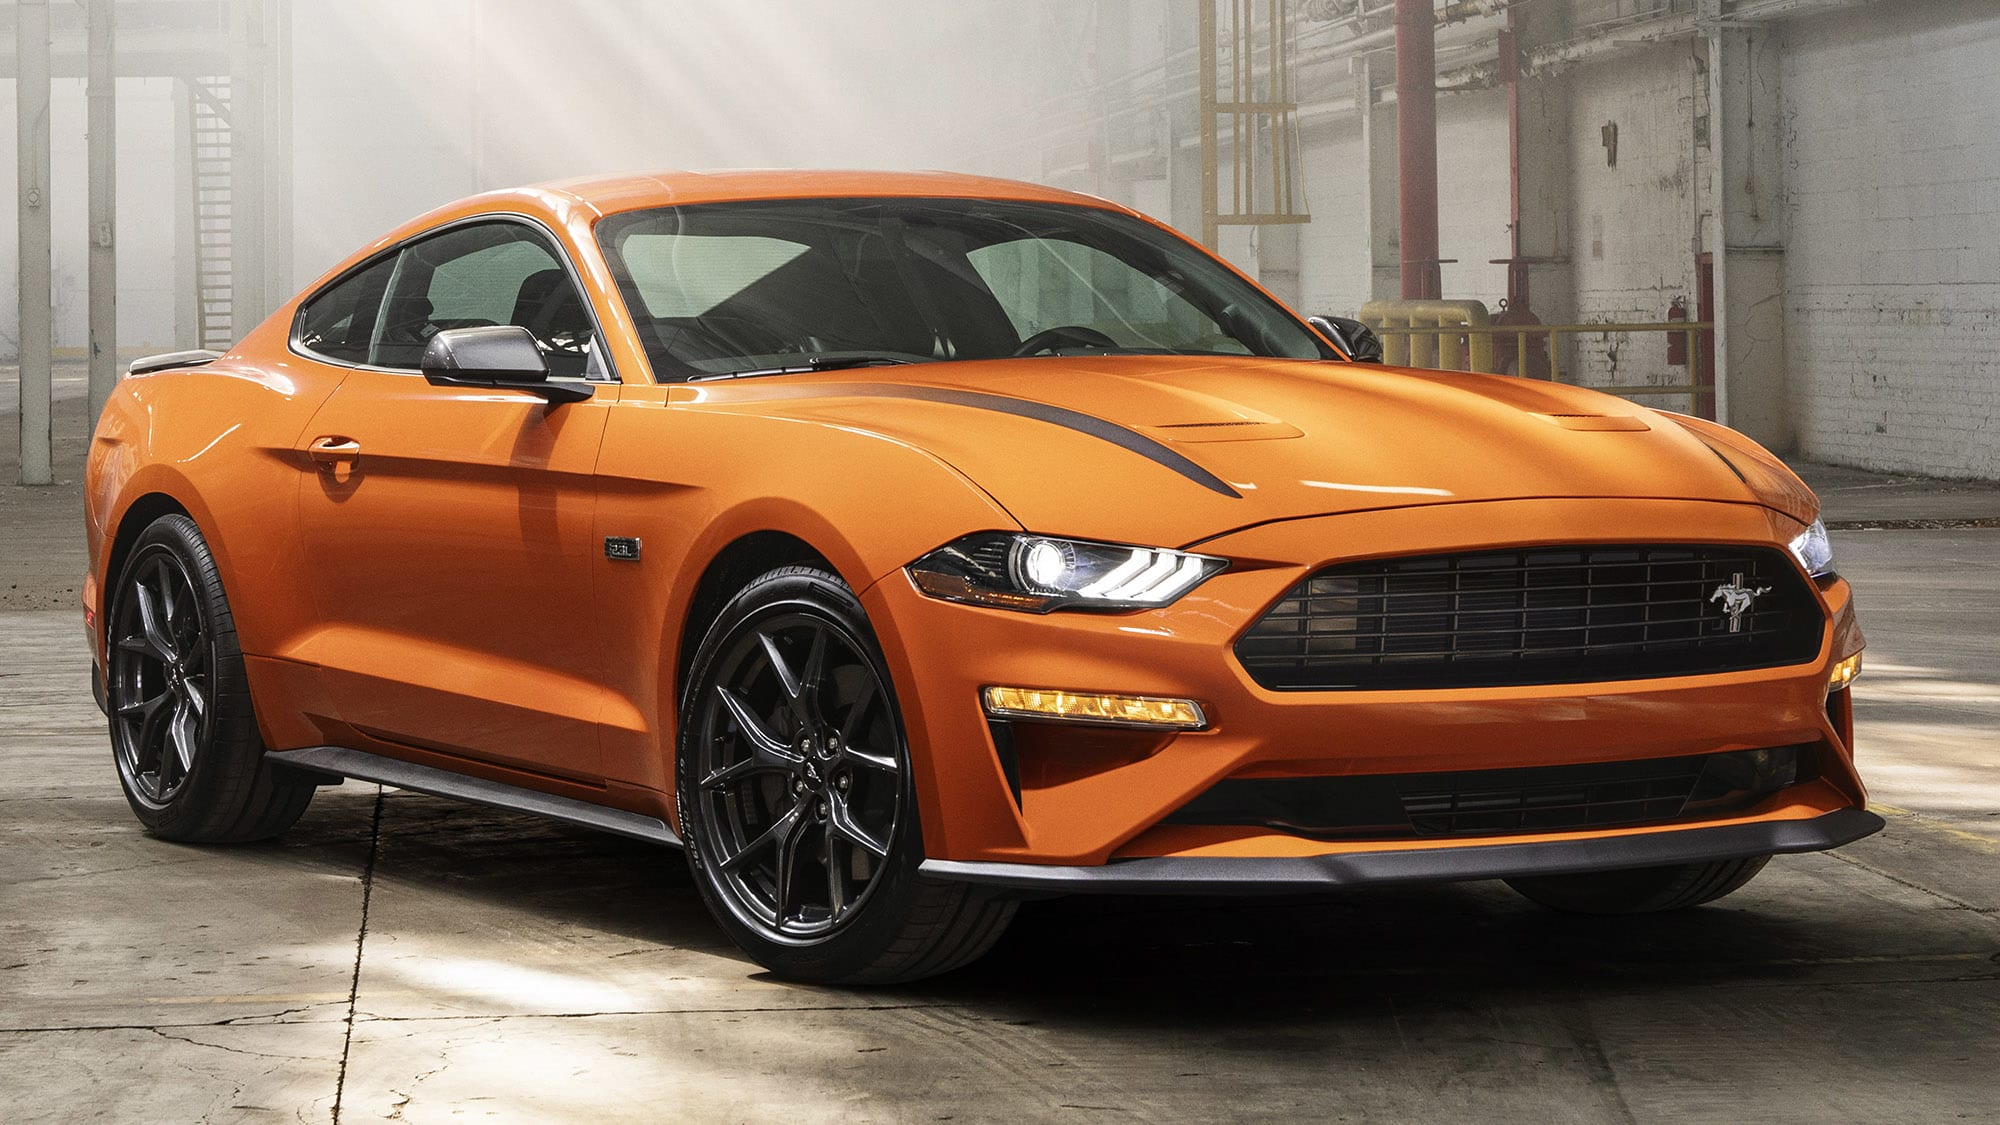 2020 Ford Mustang Gt Review.2020 Ford Mustang High Performance Pricing Revealed Caradvice